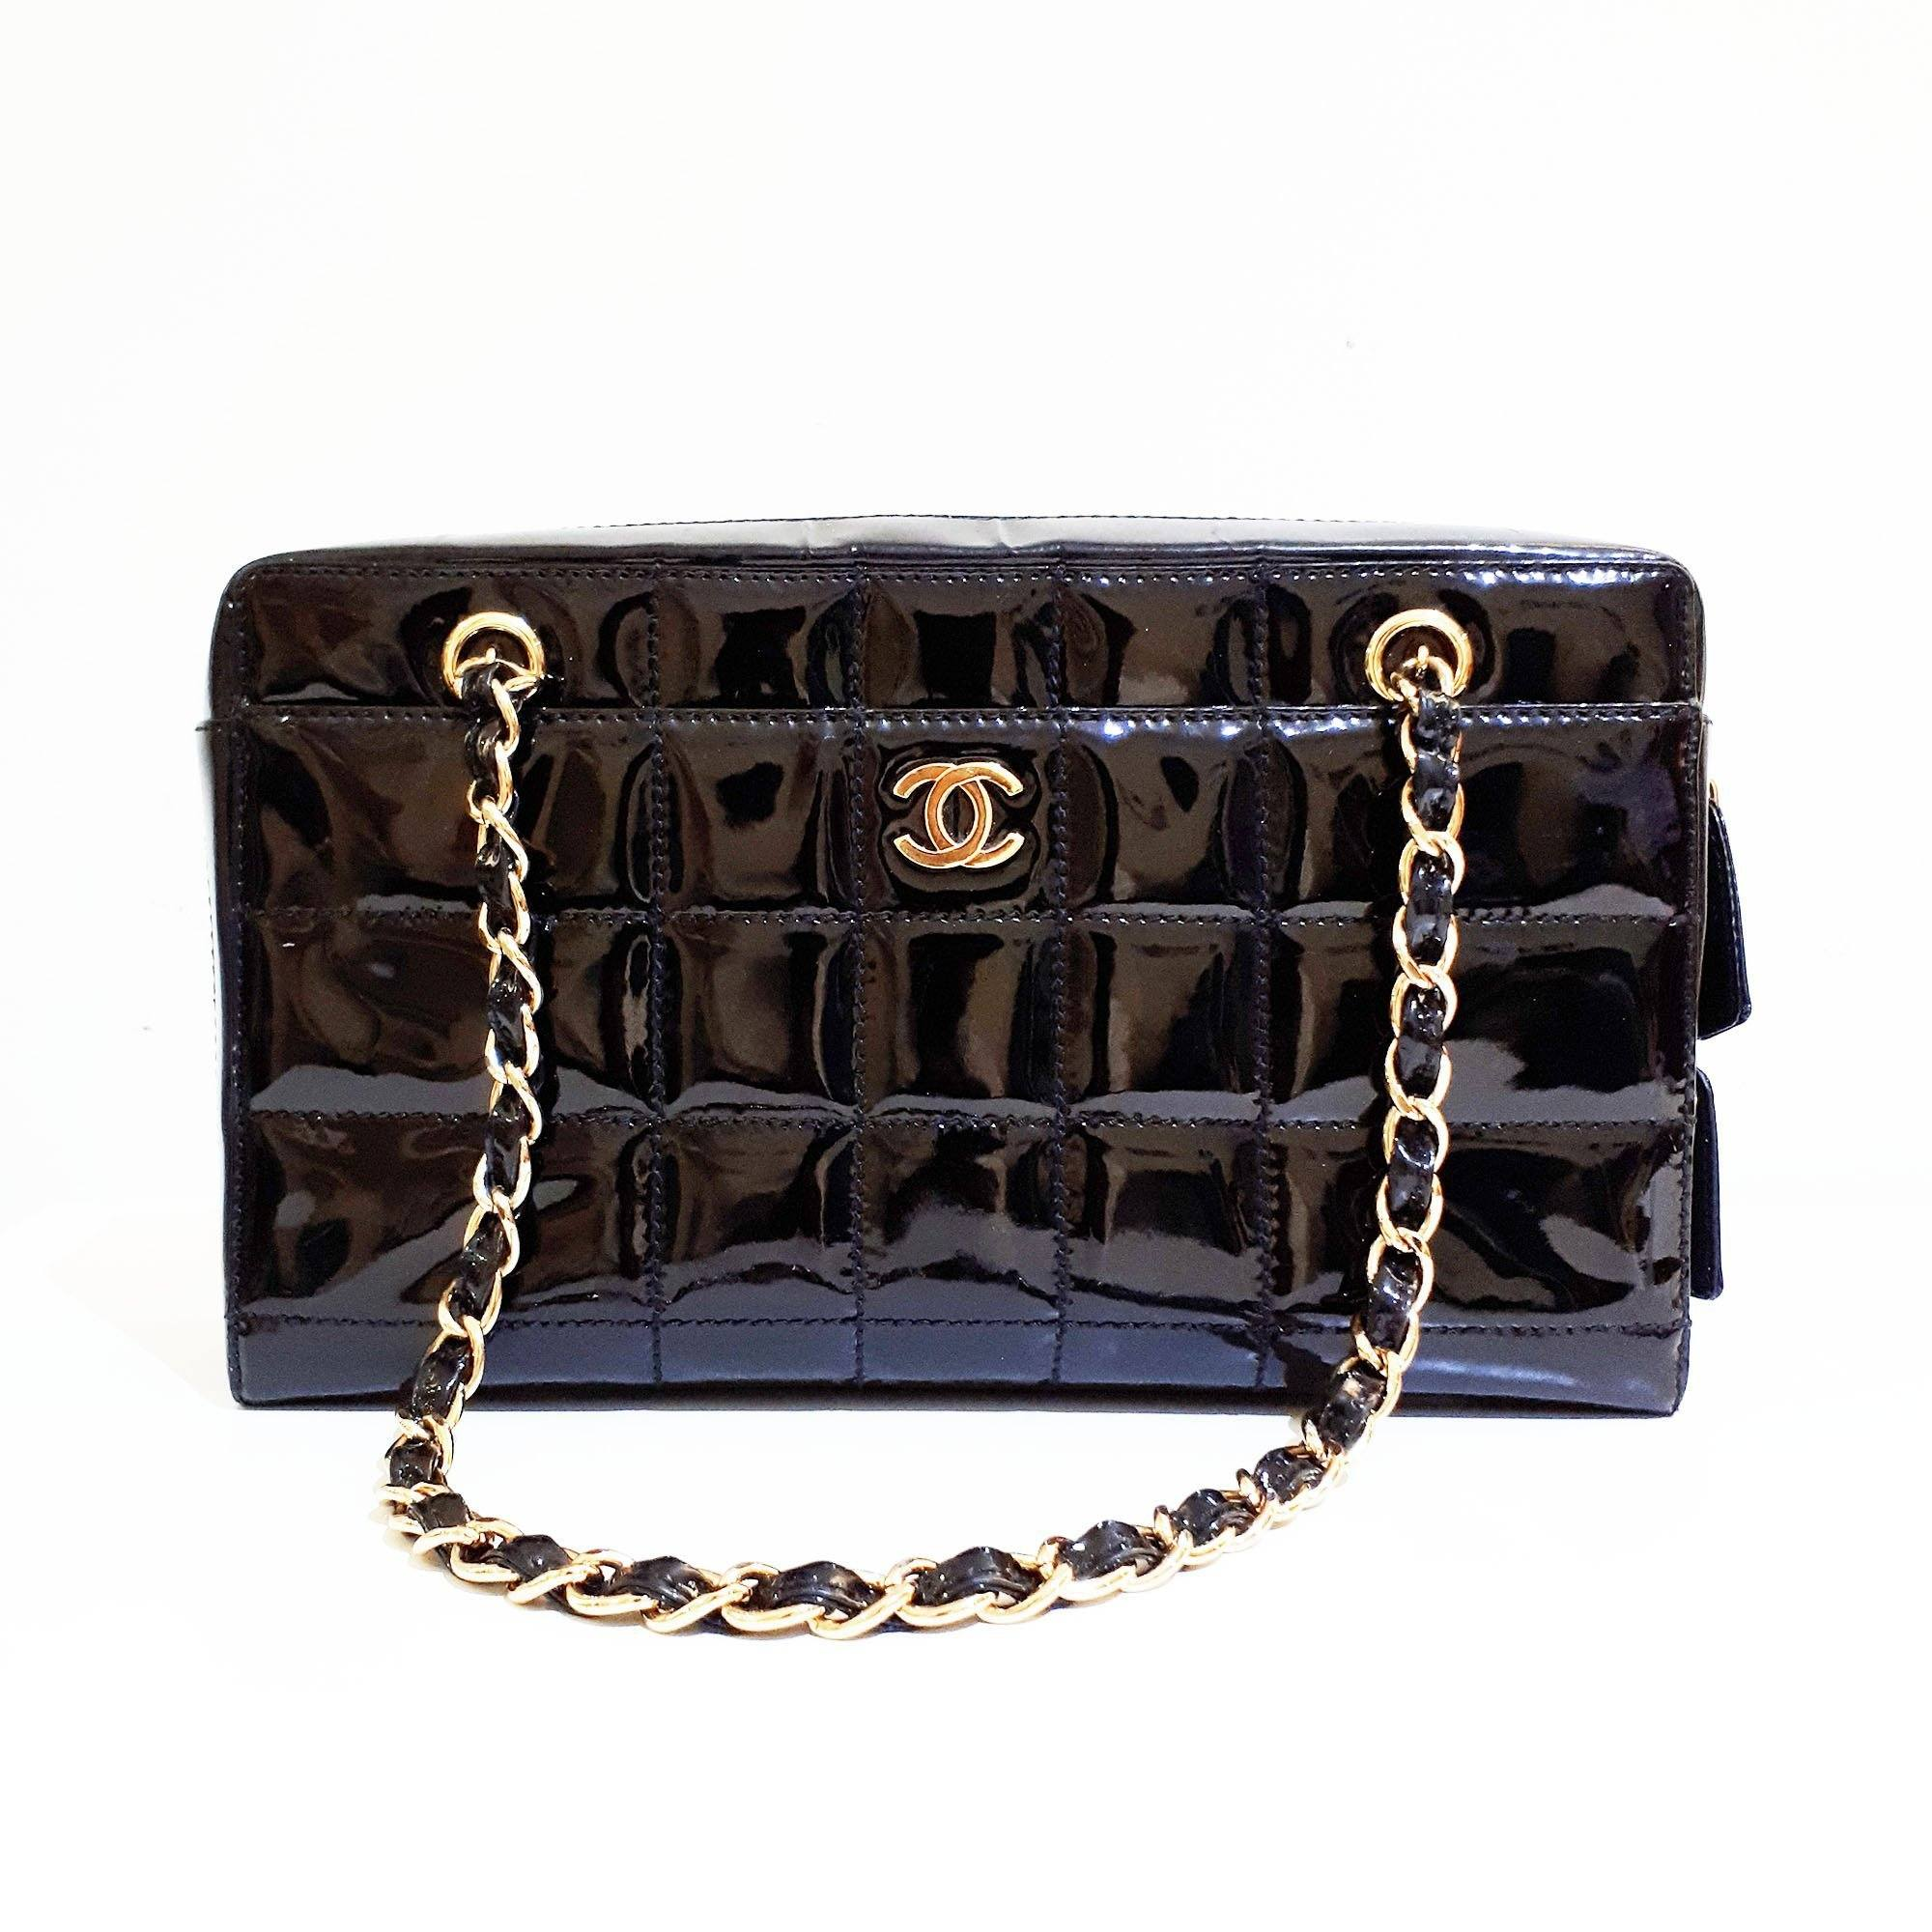 c3fba183e279 Chanel Black Chocolate Bar Quilted Patent Leather Camera Bag – Garderobe